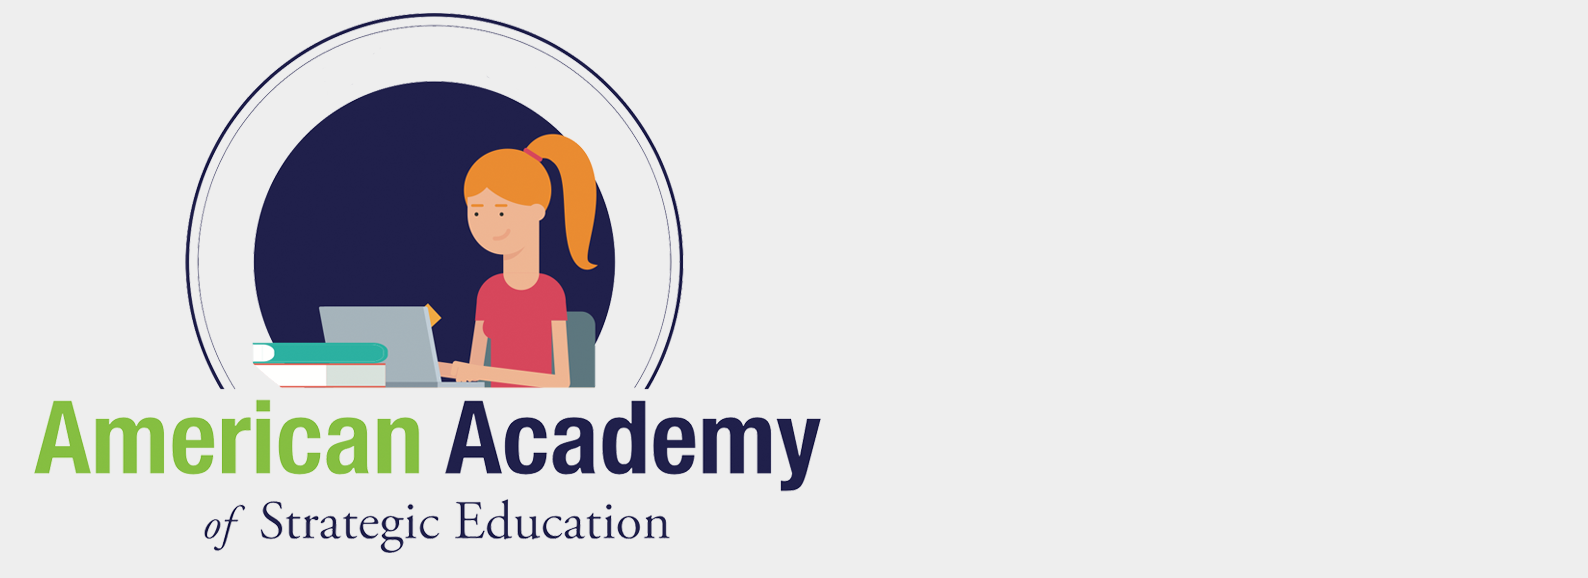 American Academy of Strategic Education